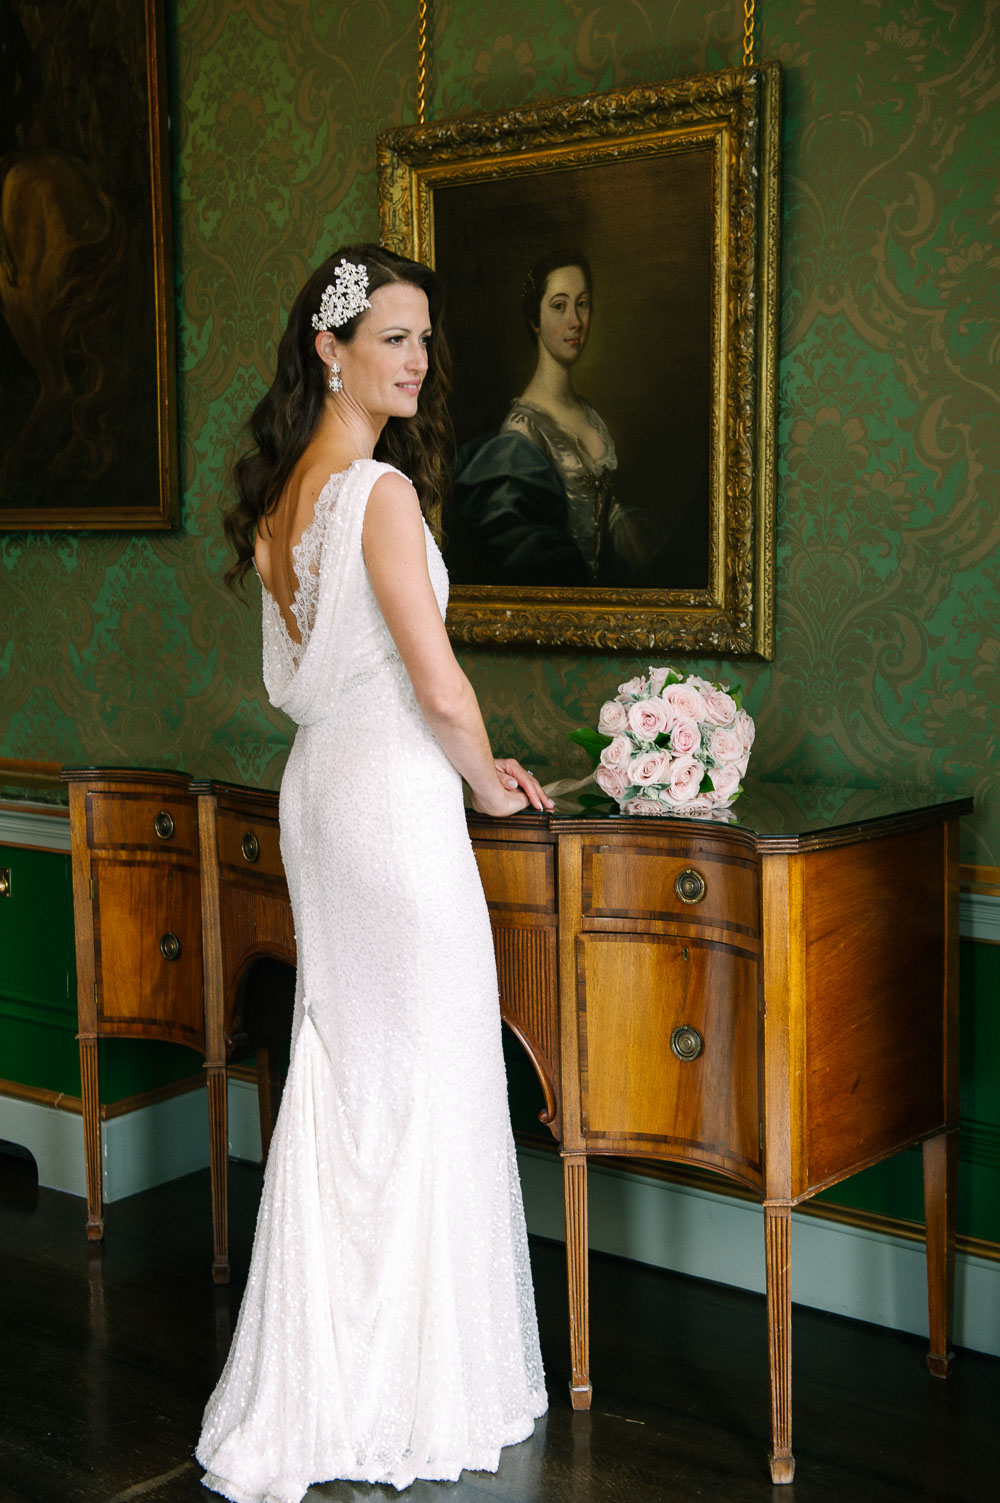 The bride poses for a wedding photograph in The Constitution Room during her Shelbourne Hotel Wedding